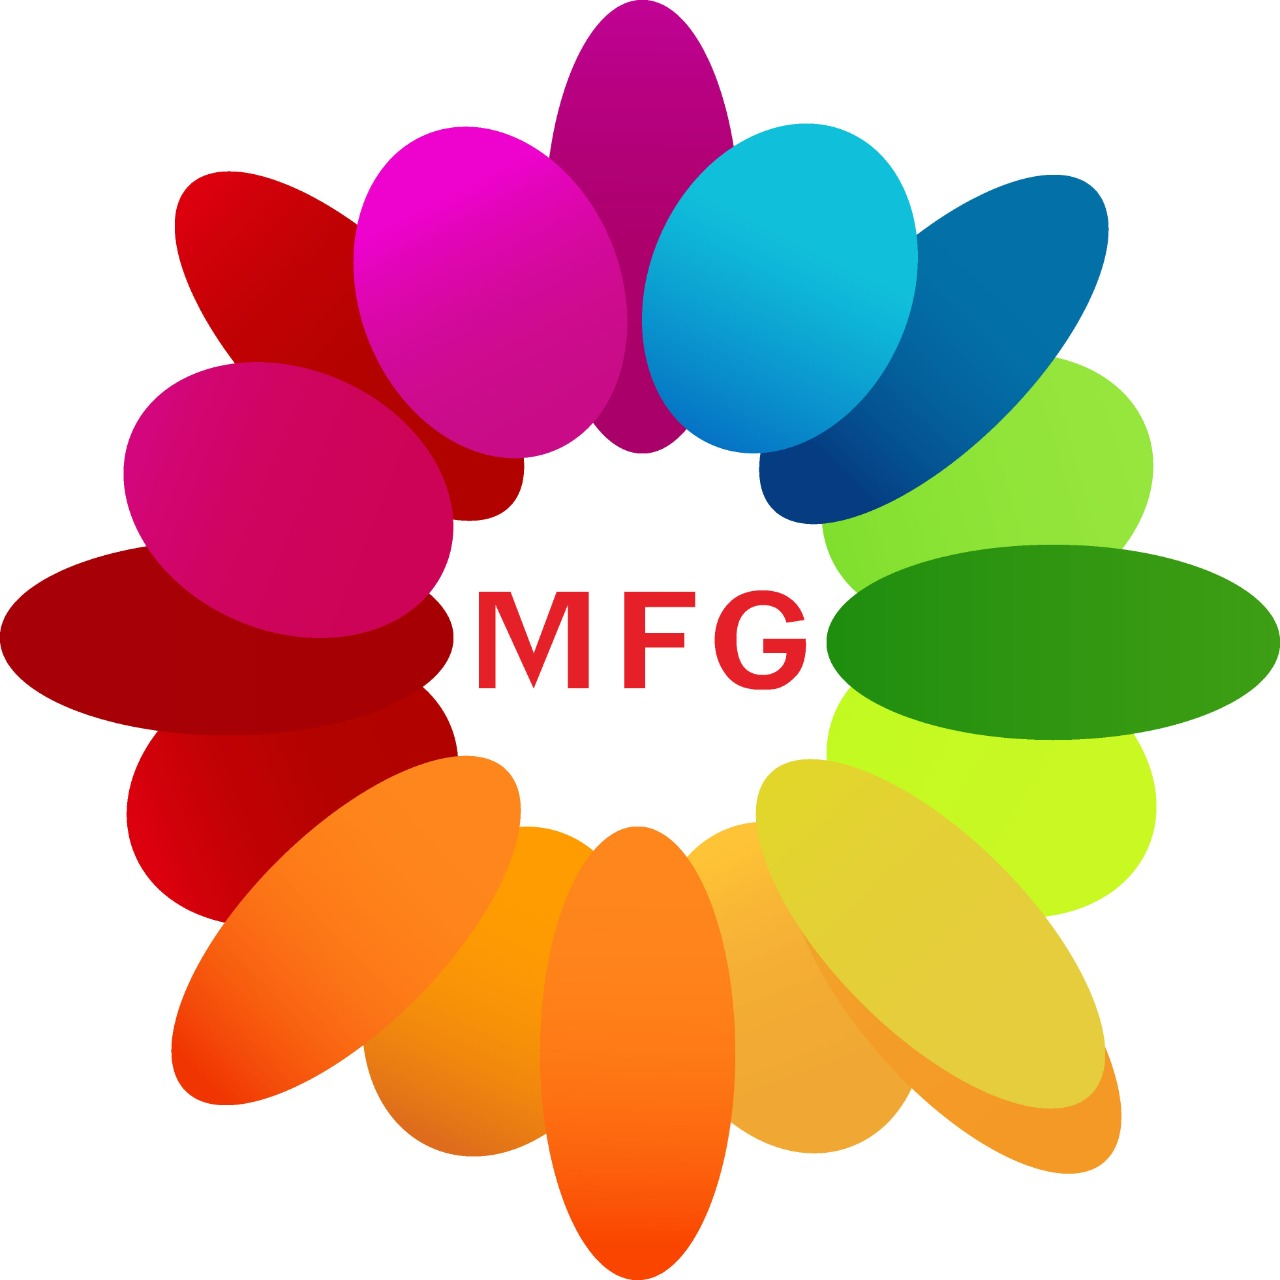 Bunch of 10 red roses with 1 pound butterscotch fresh cream cake with 3 blown balloons